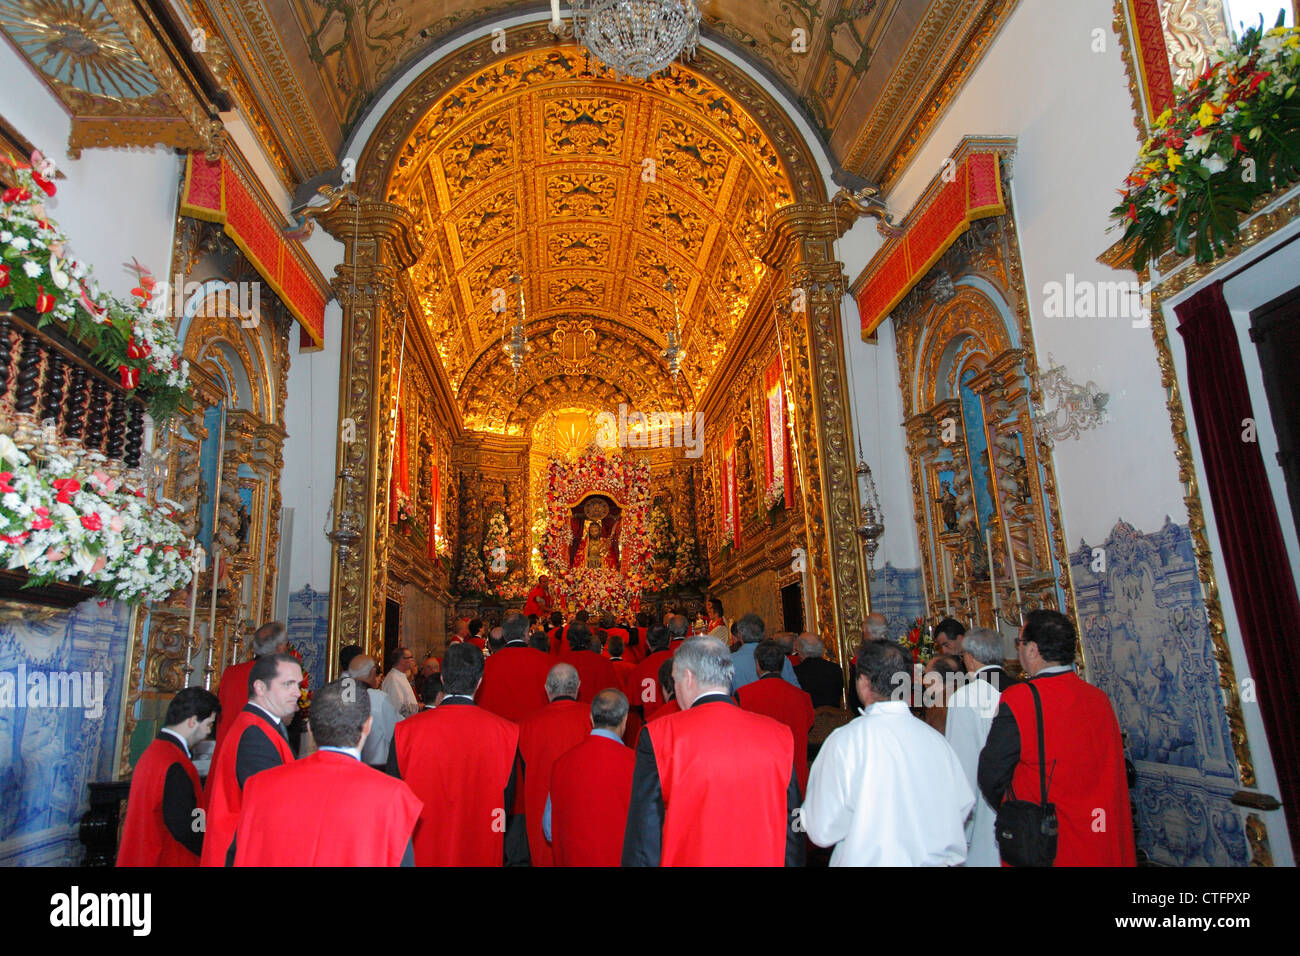 Religious festivities of Santo Cristo dos Milagres (Our Lord Holy Christ of Miracles) in Ponta Delgada, Azores islands - Stock Image